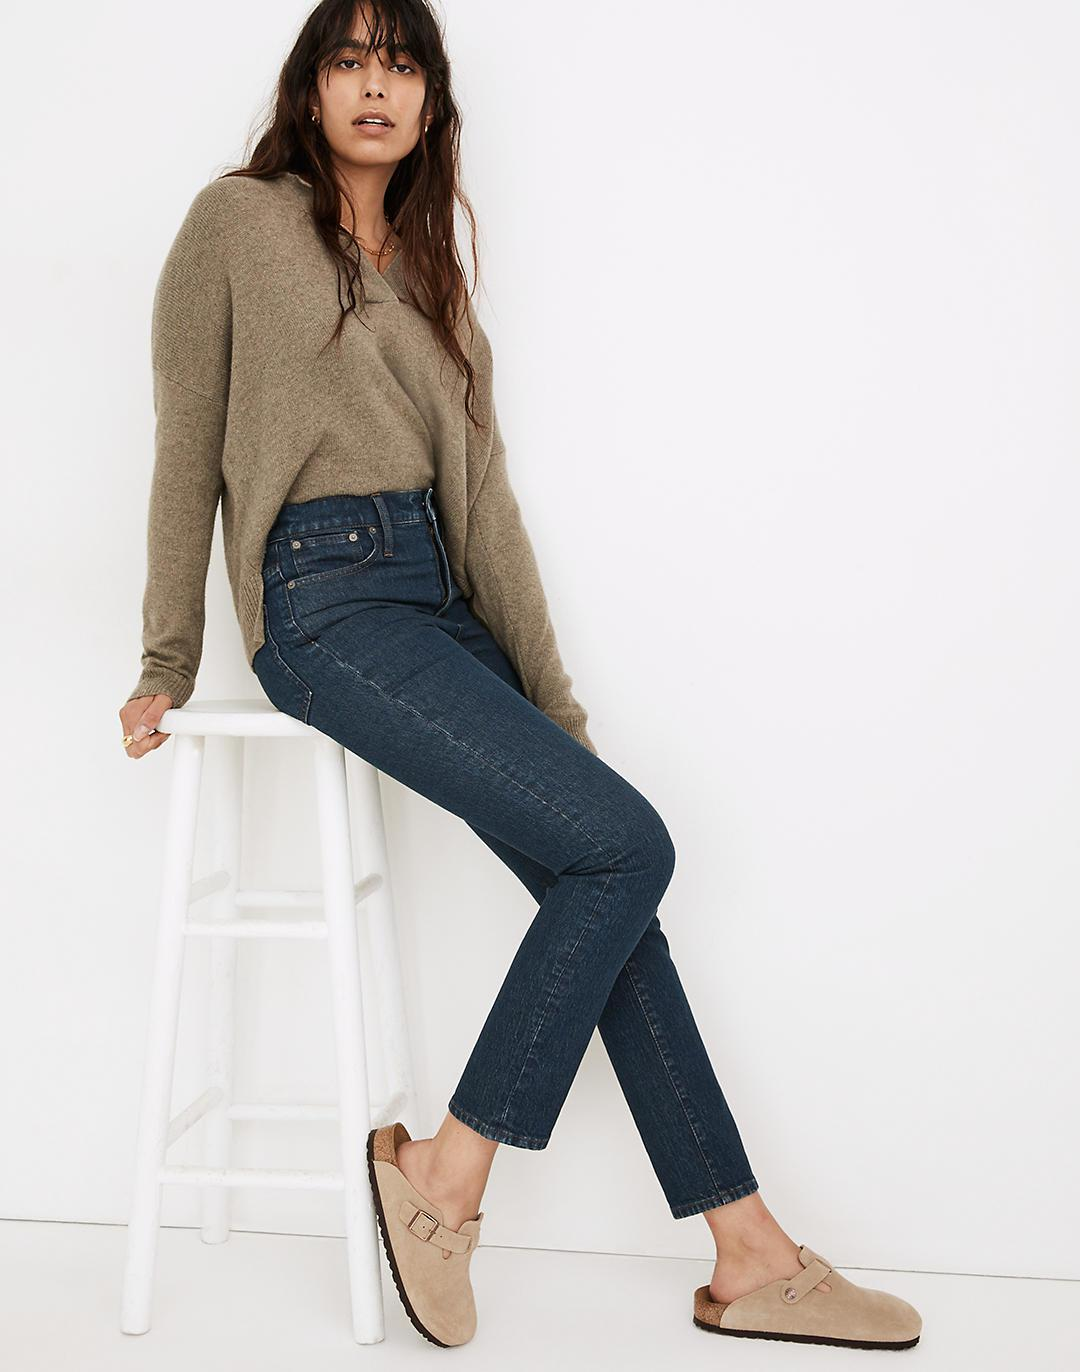 The Perfect Vintage Jean in Haight Wash